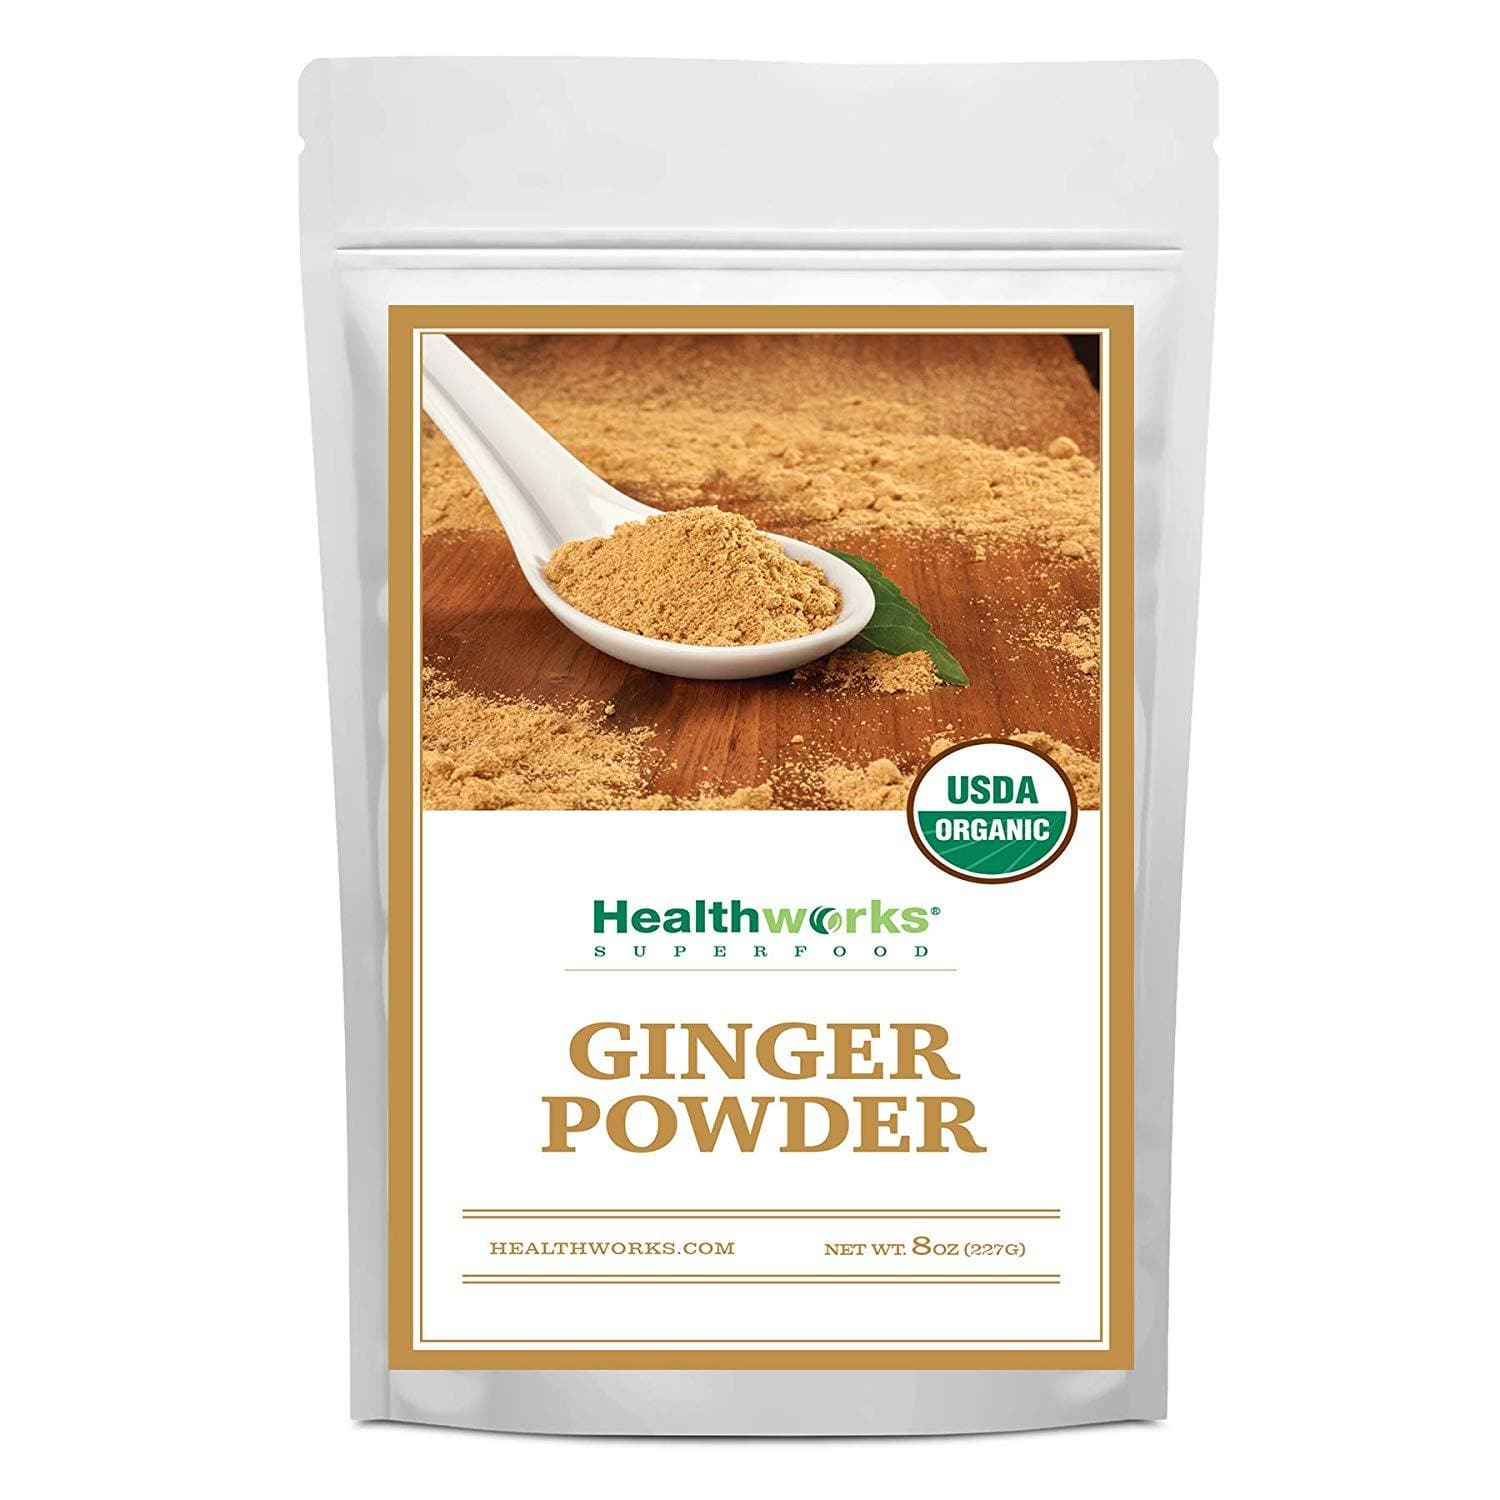 Healthworks Ginger Powder Raw Organic, 8oz - Healthworks Superfood Organic